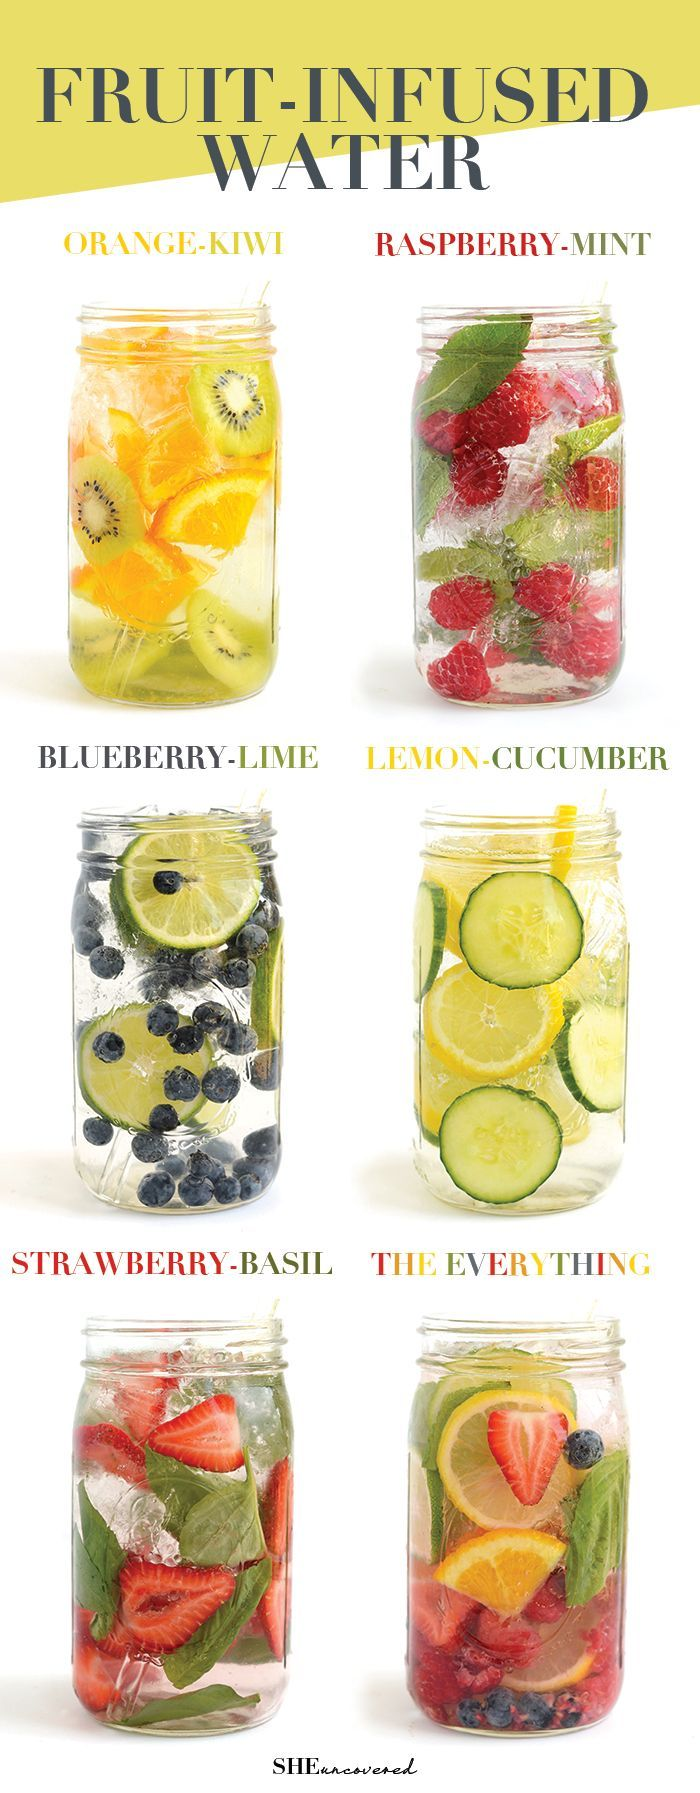 Fruit-Infused water - 6 ways / Águas saborizadas com frutas